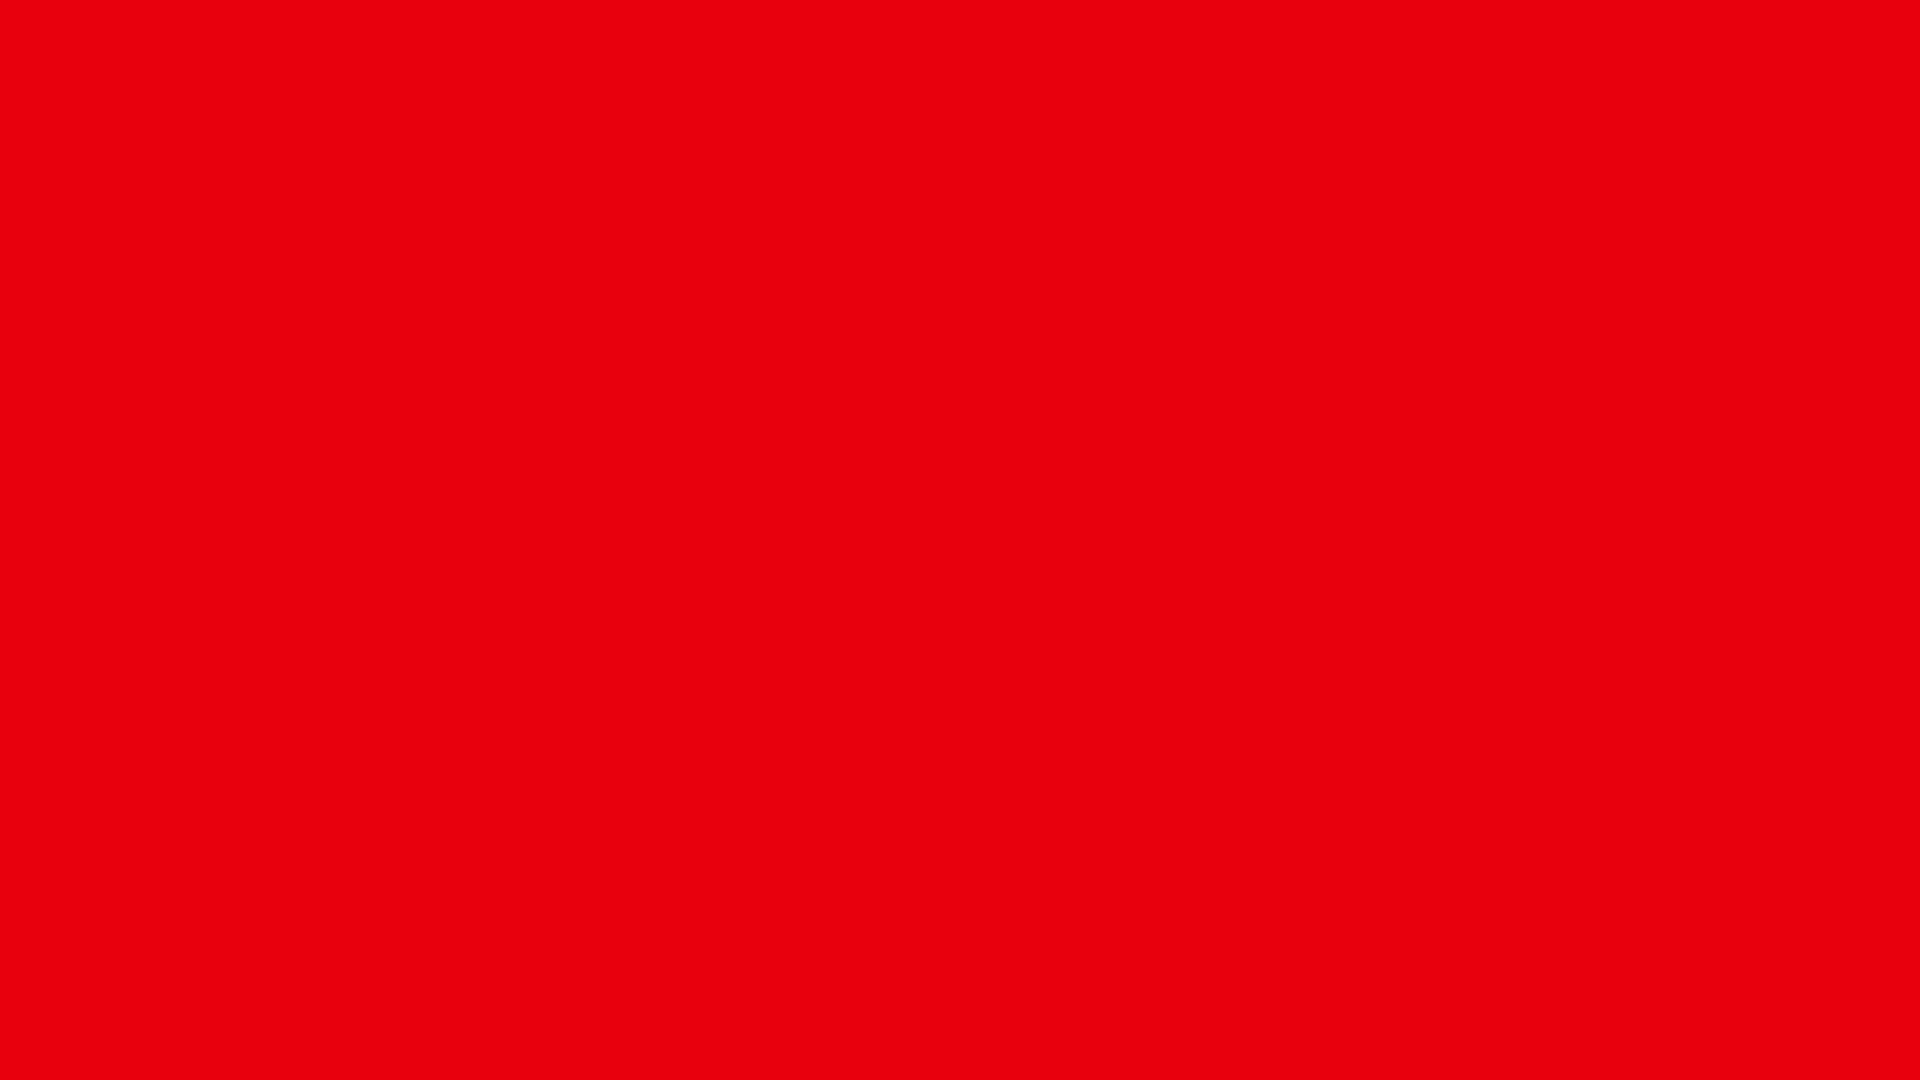 Privacy Policy >> 1920x1080 KU Crimson Solid Color Background